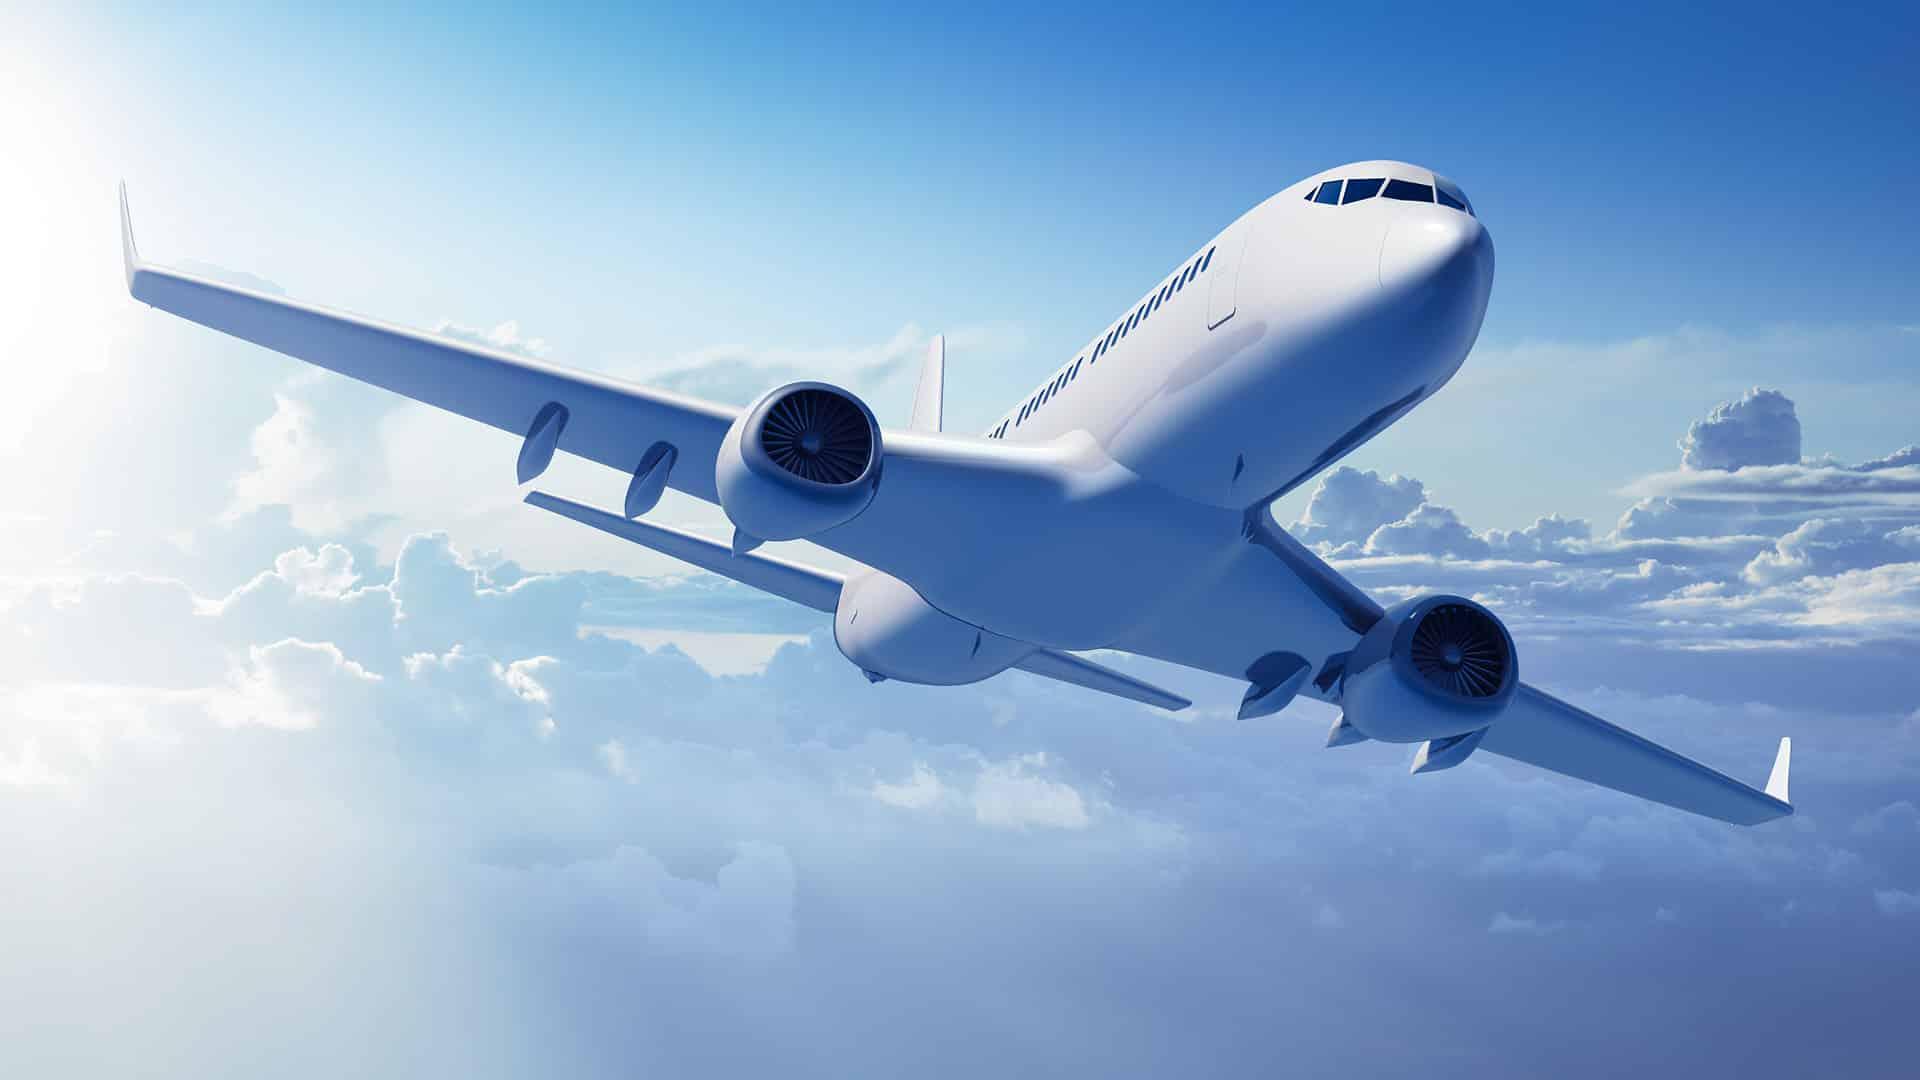 Aviation sector recovering after COVID-19 impact: Scindia